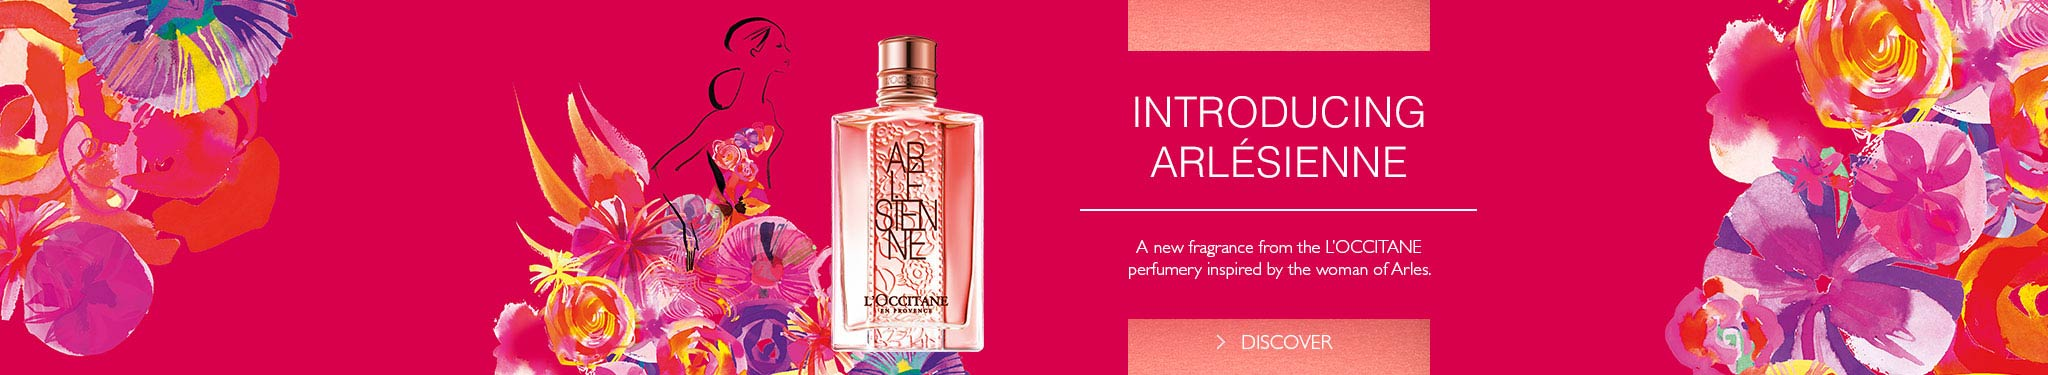 Introducting Arlésienne: A New Fragrance From L'OCCITANE Perfumery Insipird By The Women of Arles.